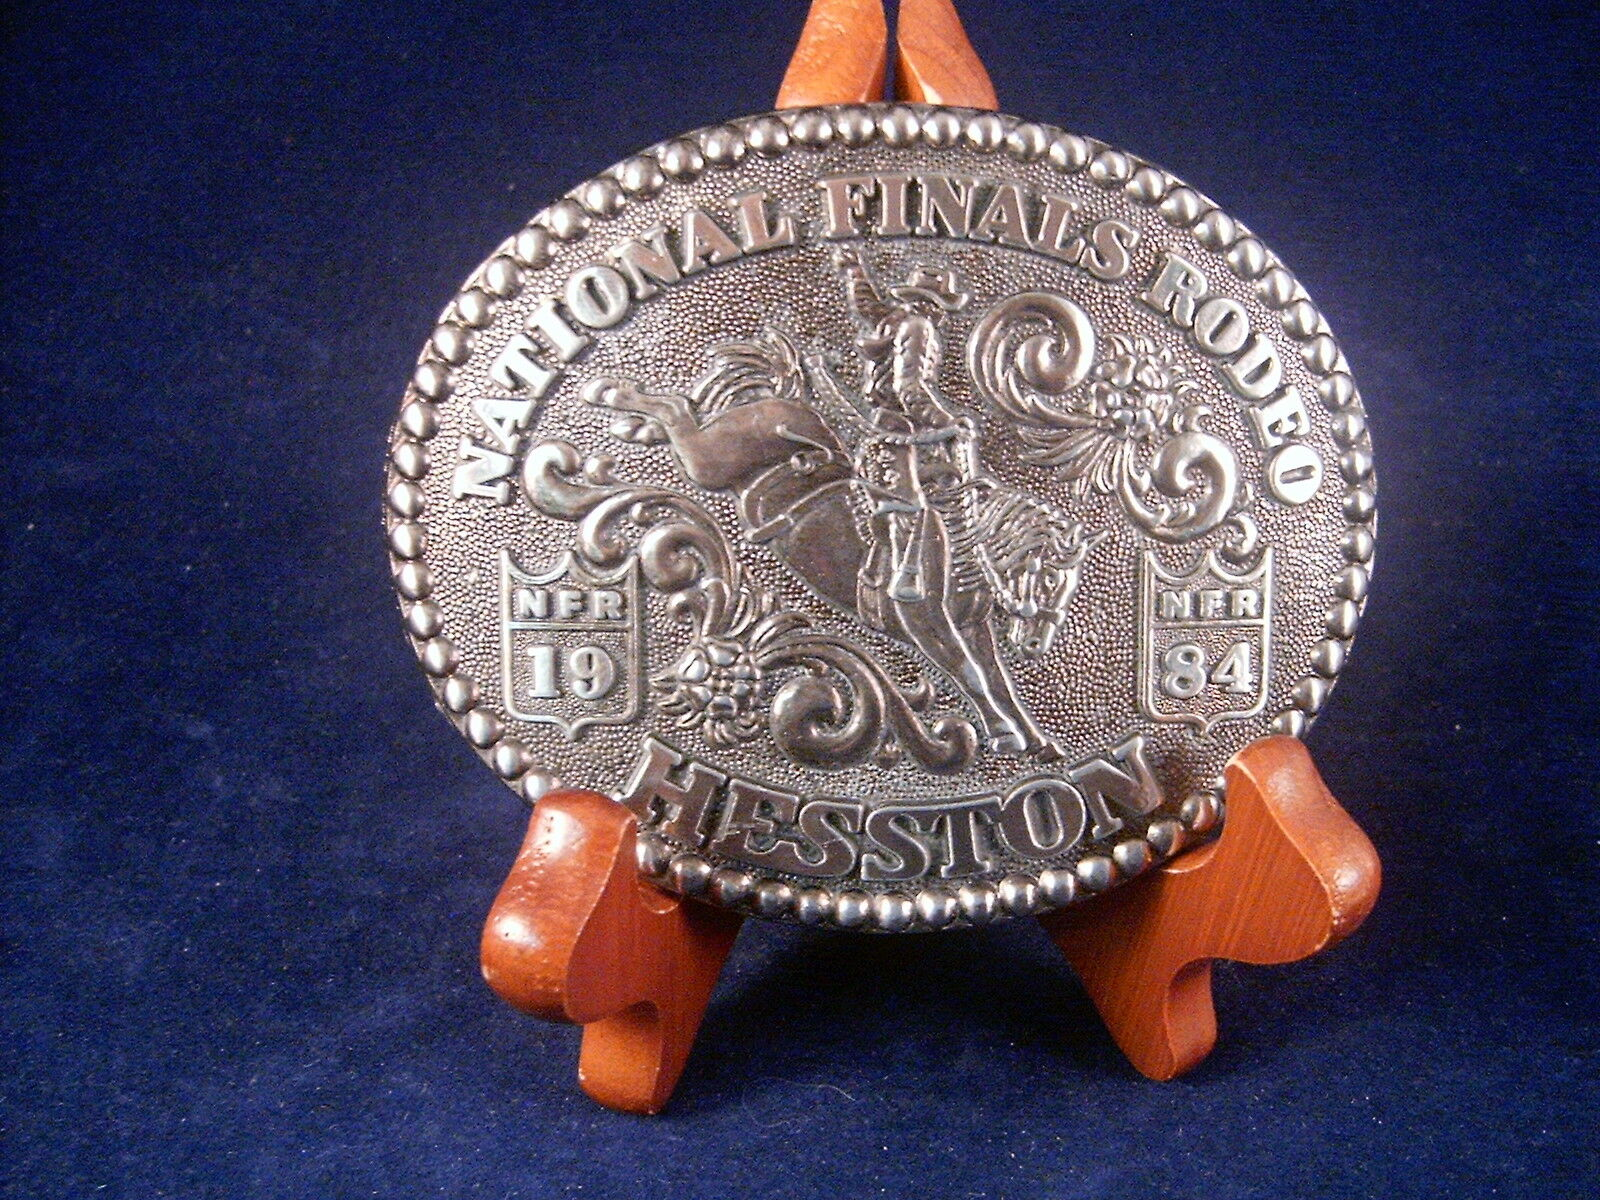 1984 HESSTON NATIONAL FINALS RODEO ANNIVERSARY SERIES BELT BUCKLE  - $9.99